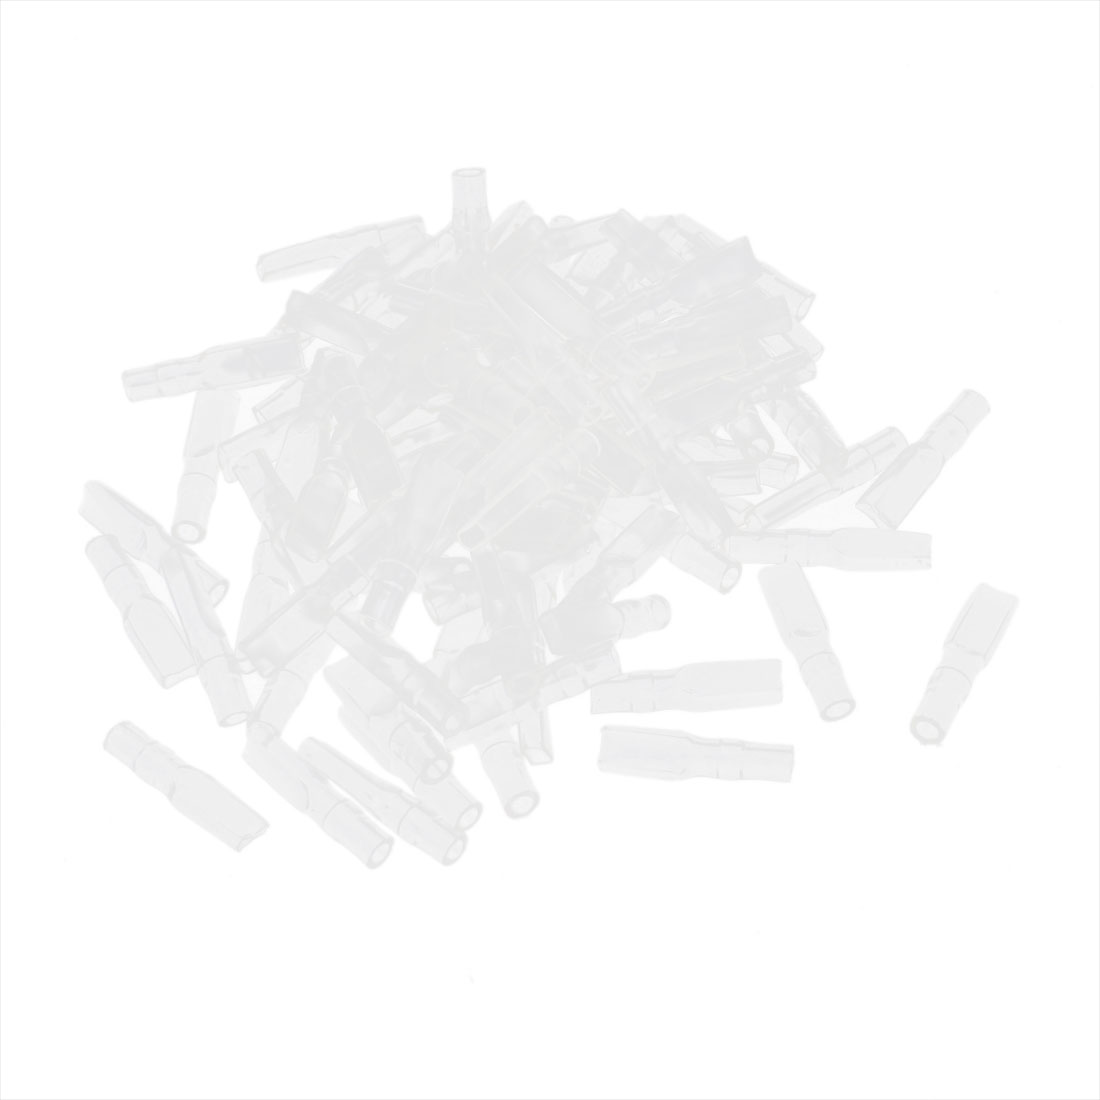 100 Pcs Motorcycle Car Clear Soft PVC Connectors 2.8mm Terminal Sleeves